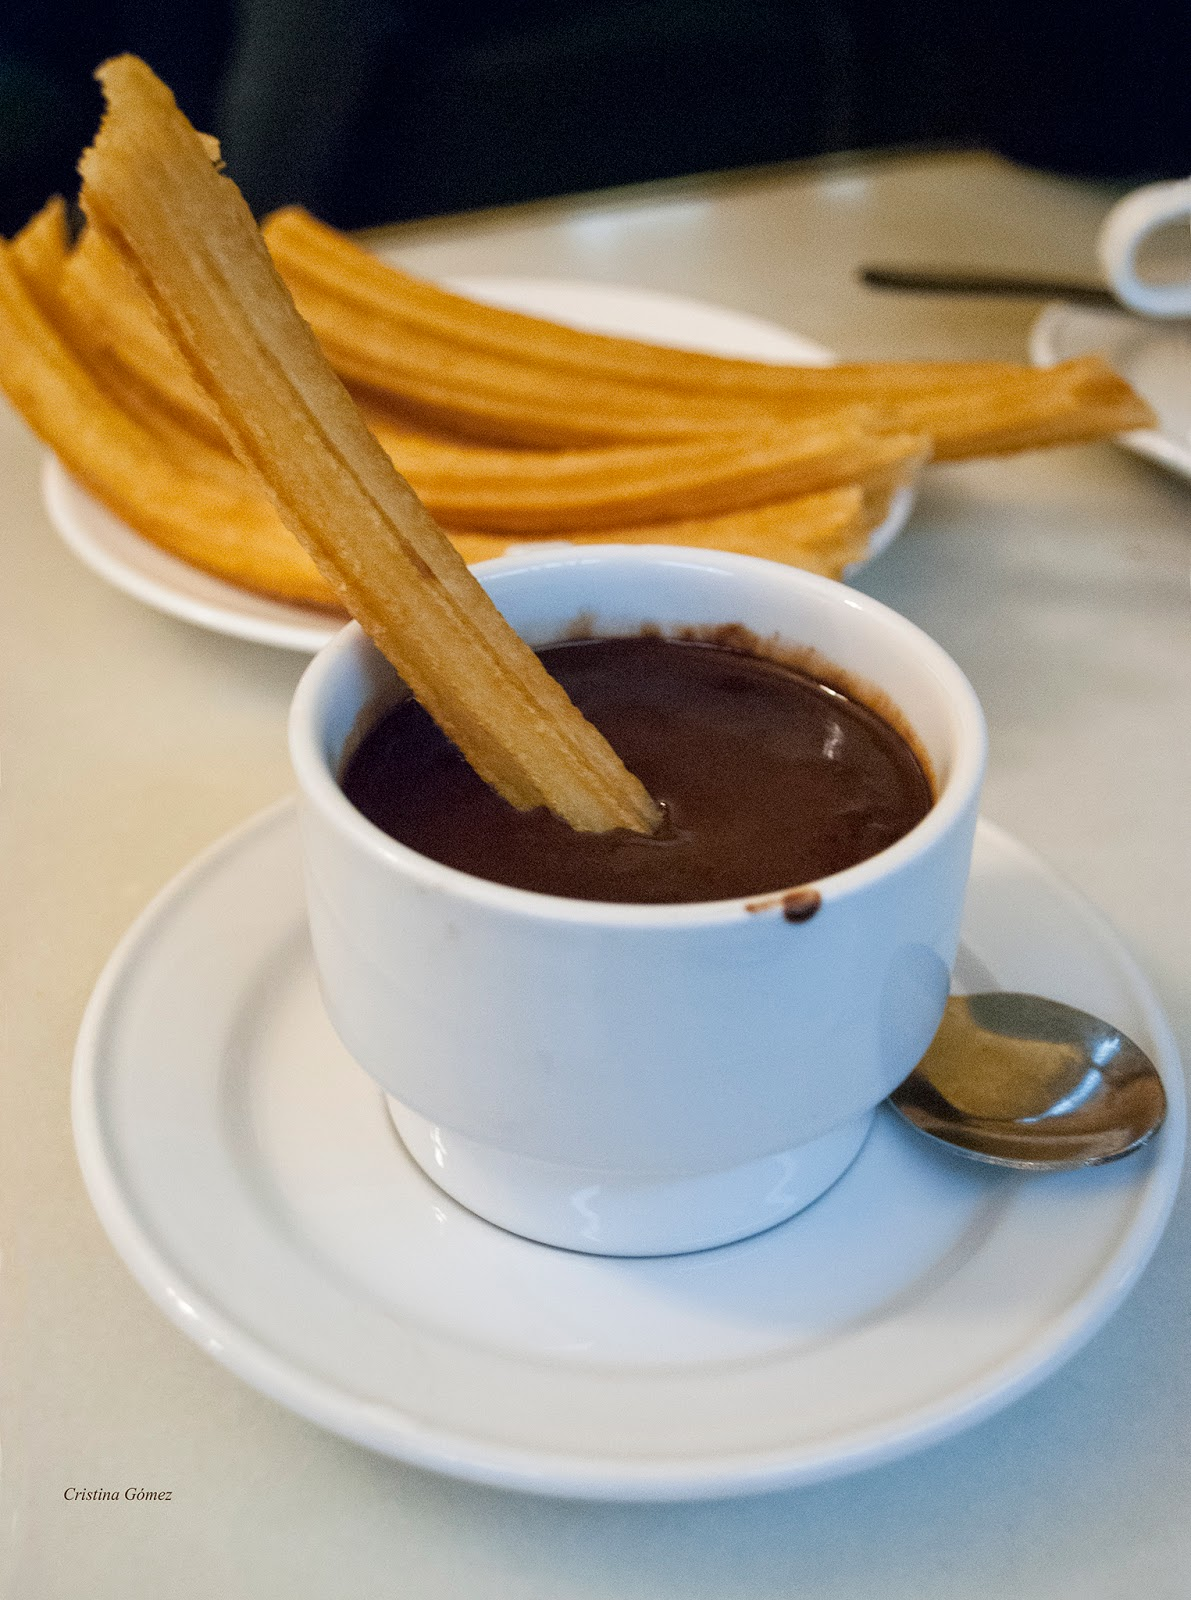 Chocolate con churros - San Gines - Madrid